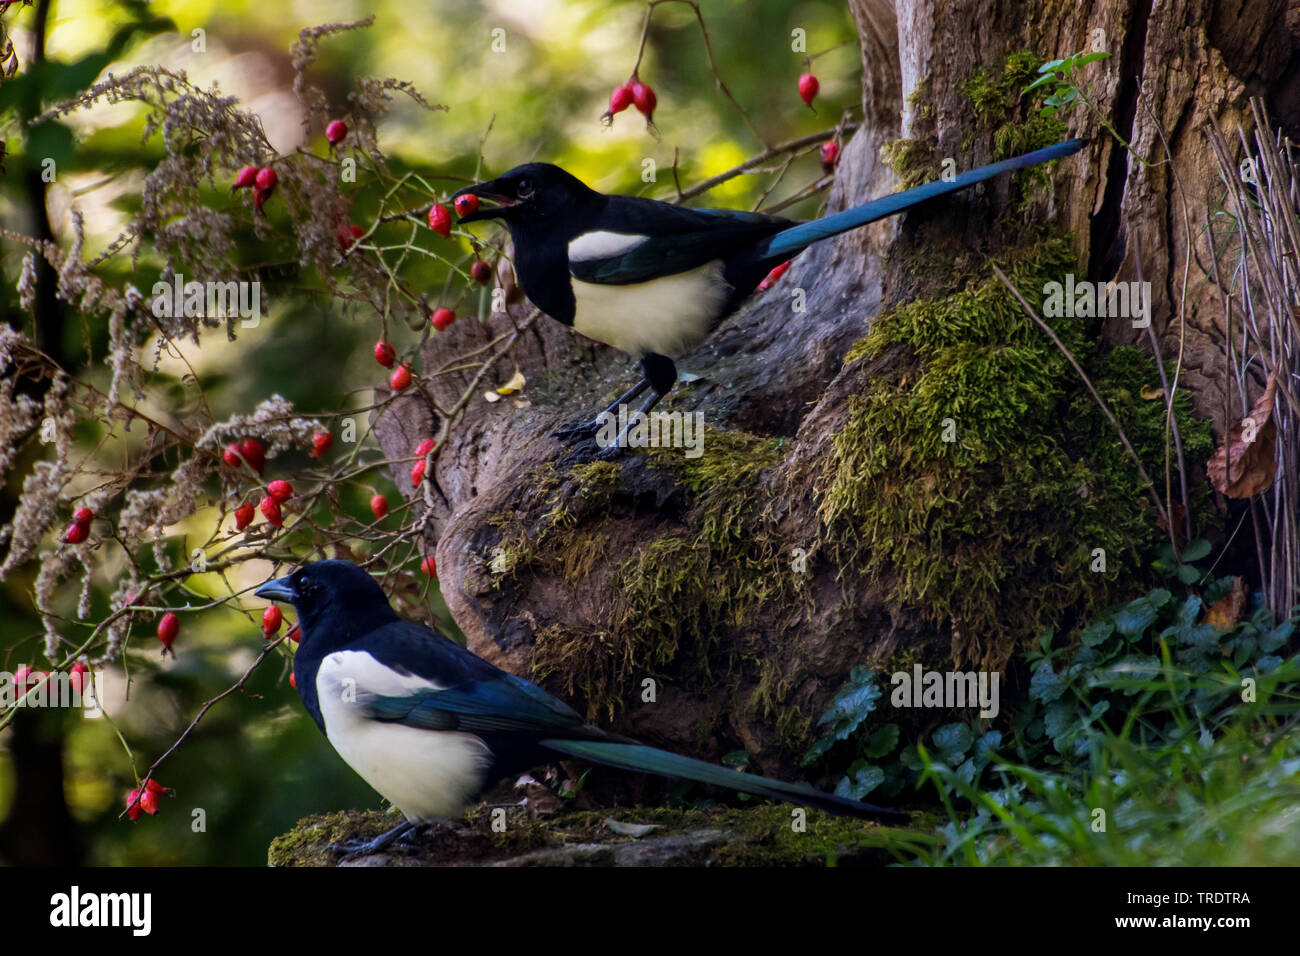 black-billed magpie (Pica pica), two black-billed magpies on mossy tree root searching for food, Switzerland, Sankt Gallen - Stock Image